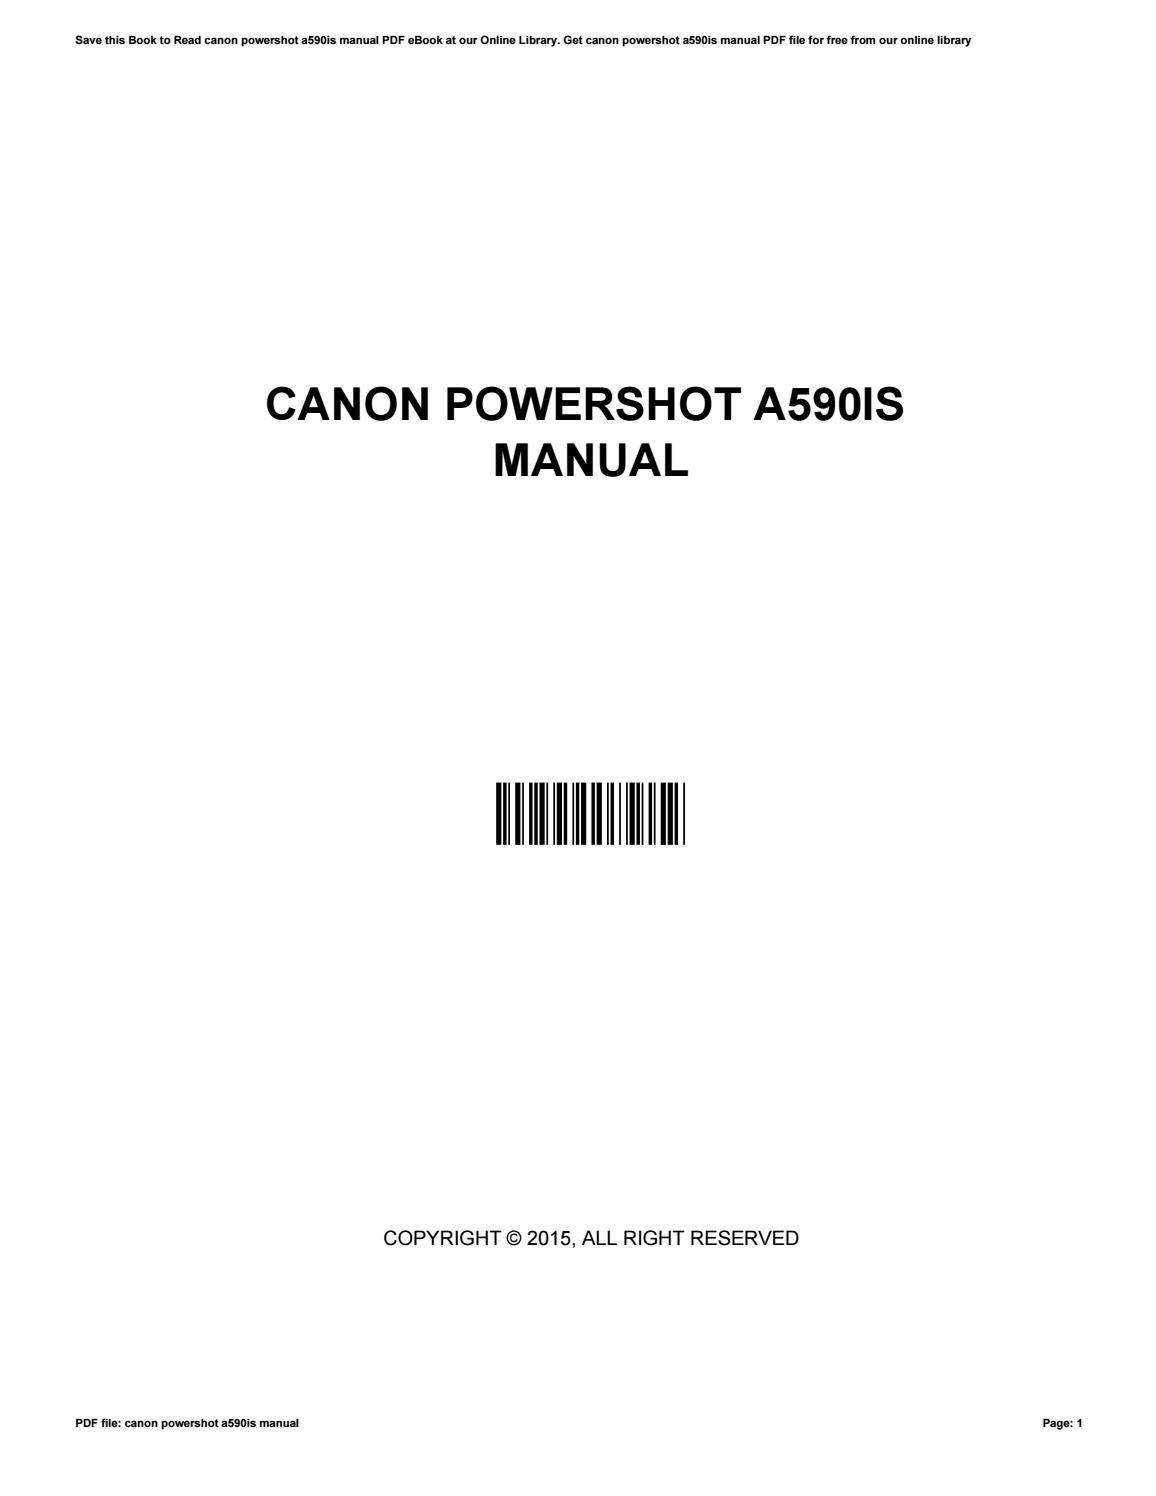 Canon all in one manual ebook ebook ballew us array canon powershot a590is manual by helenrector4569 issuu rh issuu fandeluxe Image collections